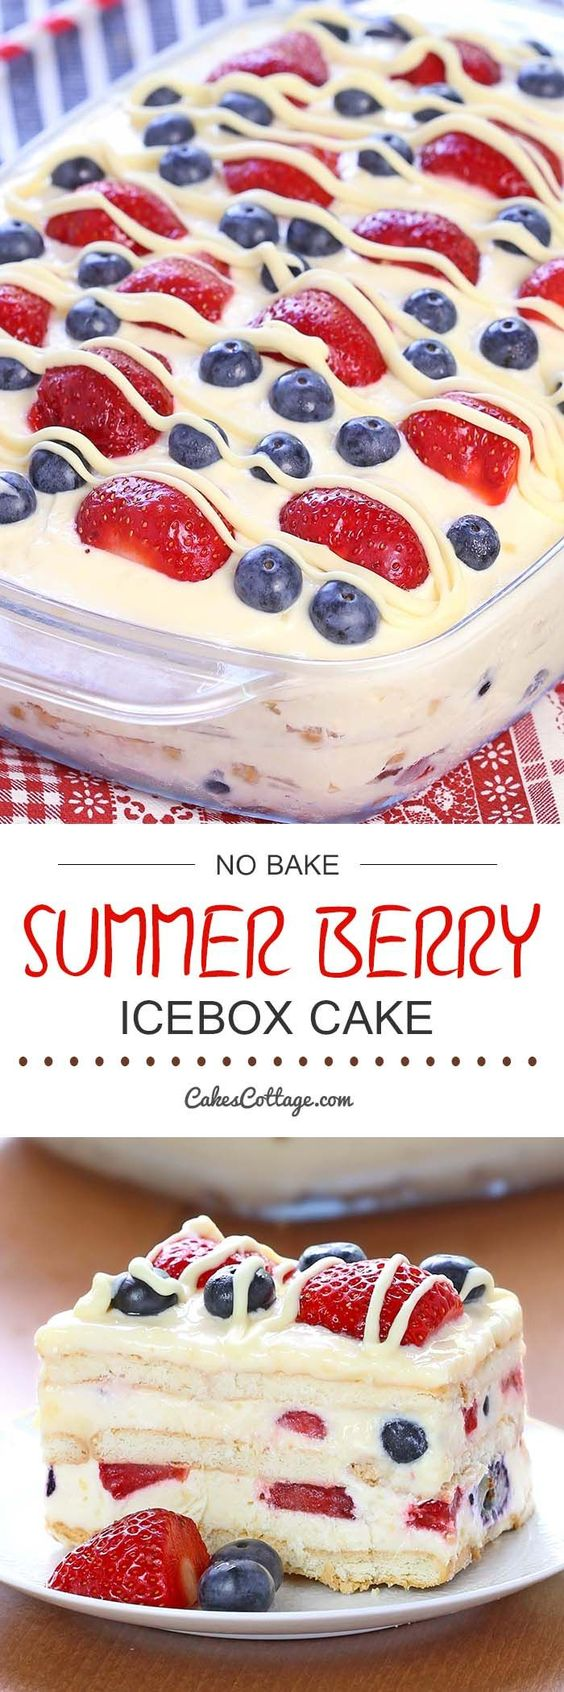 Looking for a quick and easy Summer dessert recipe? Try out delicious No Bake Summer Berry Icebox Cake !: